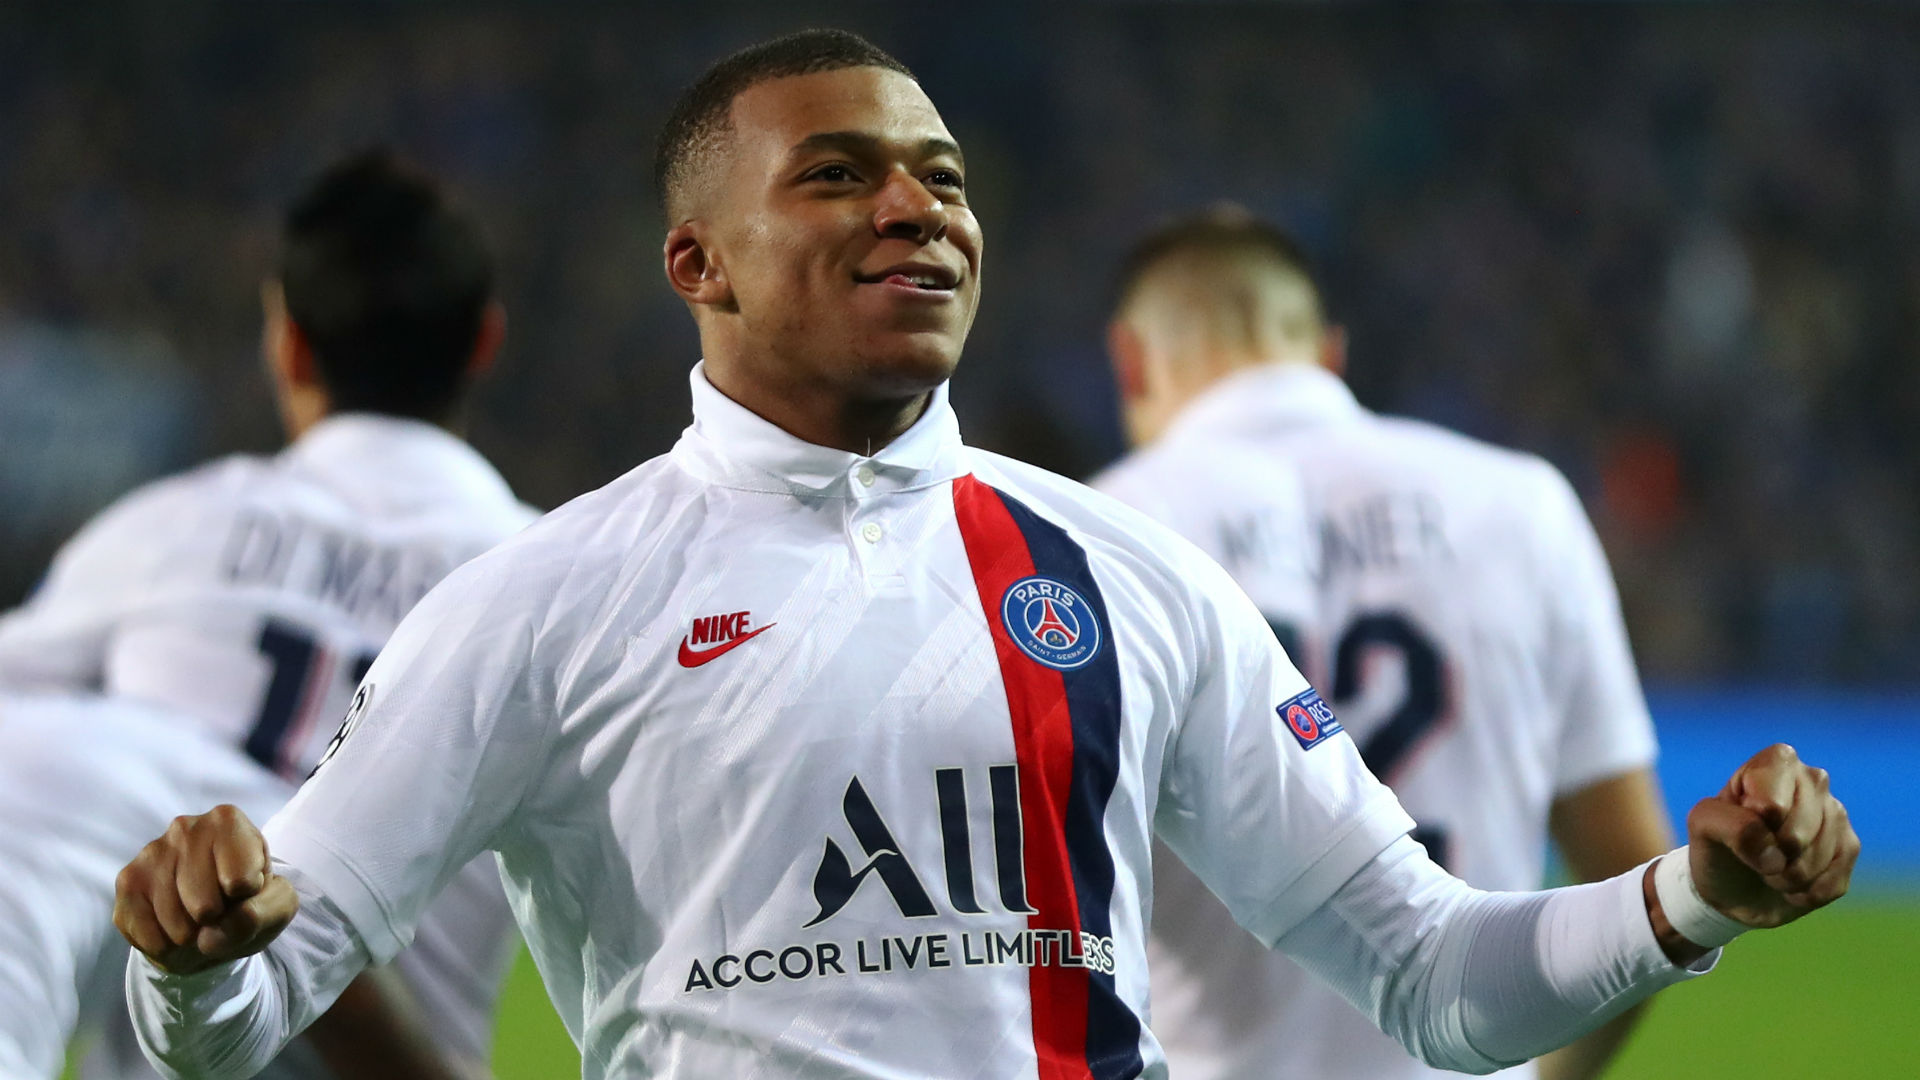 Mbappe available for PSG clash with Nice